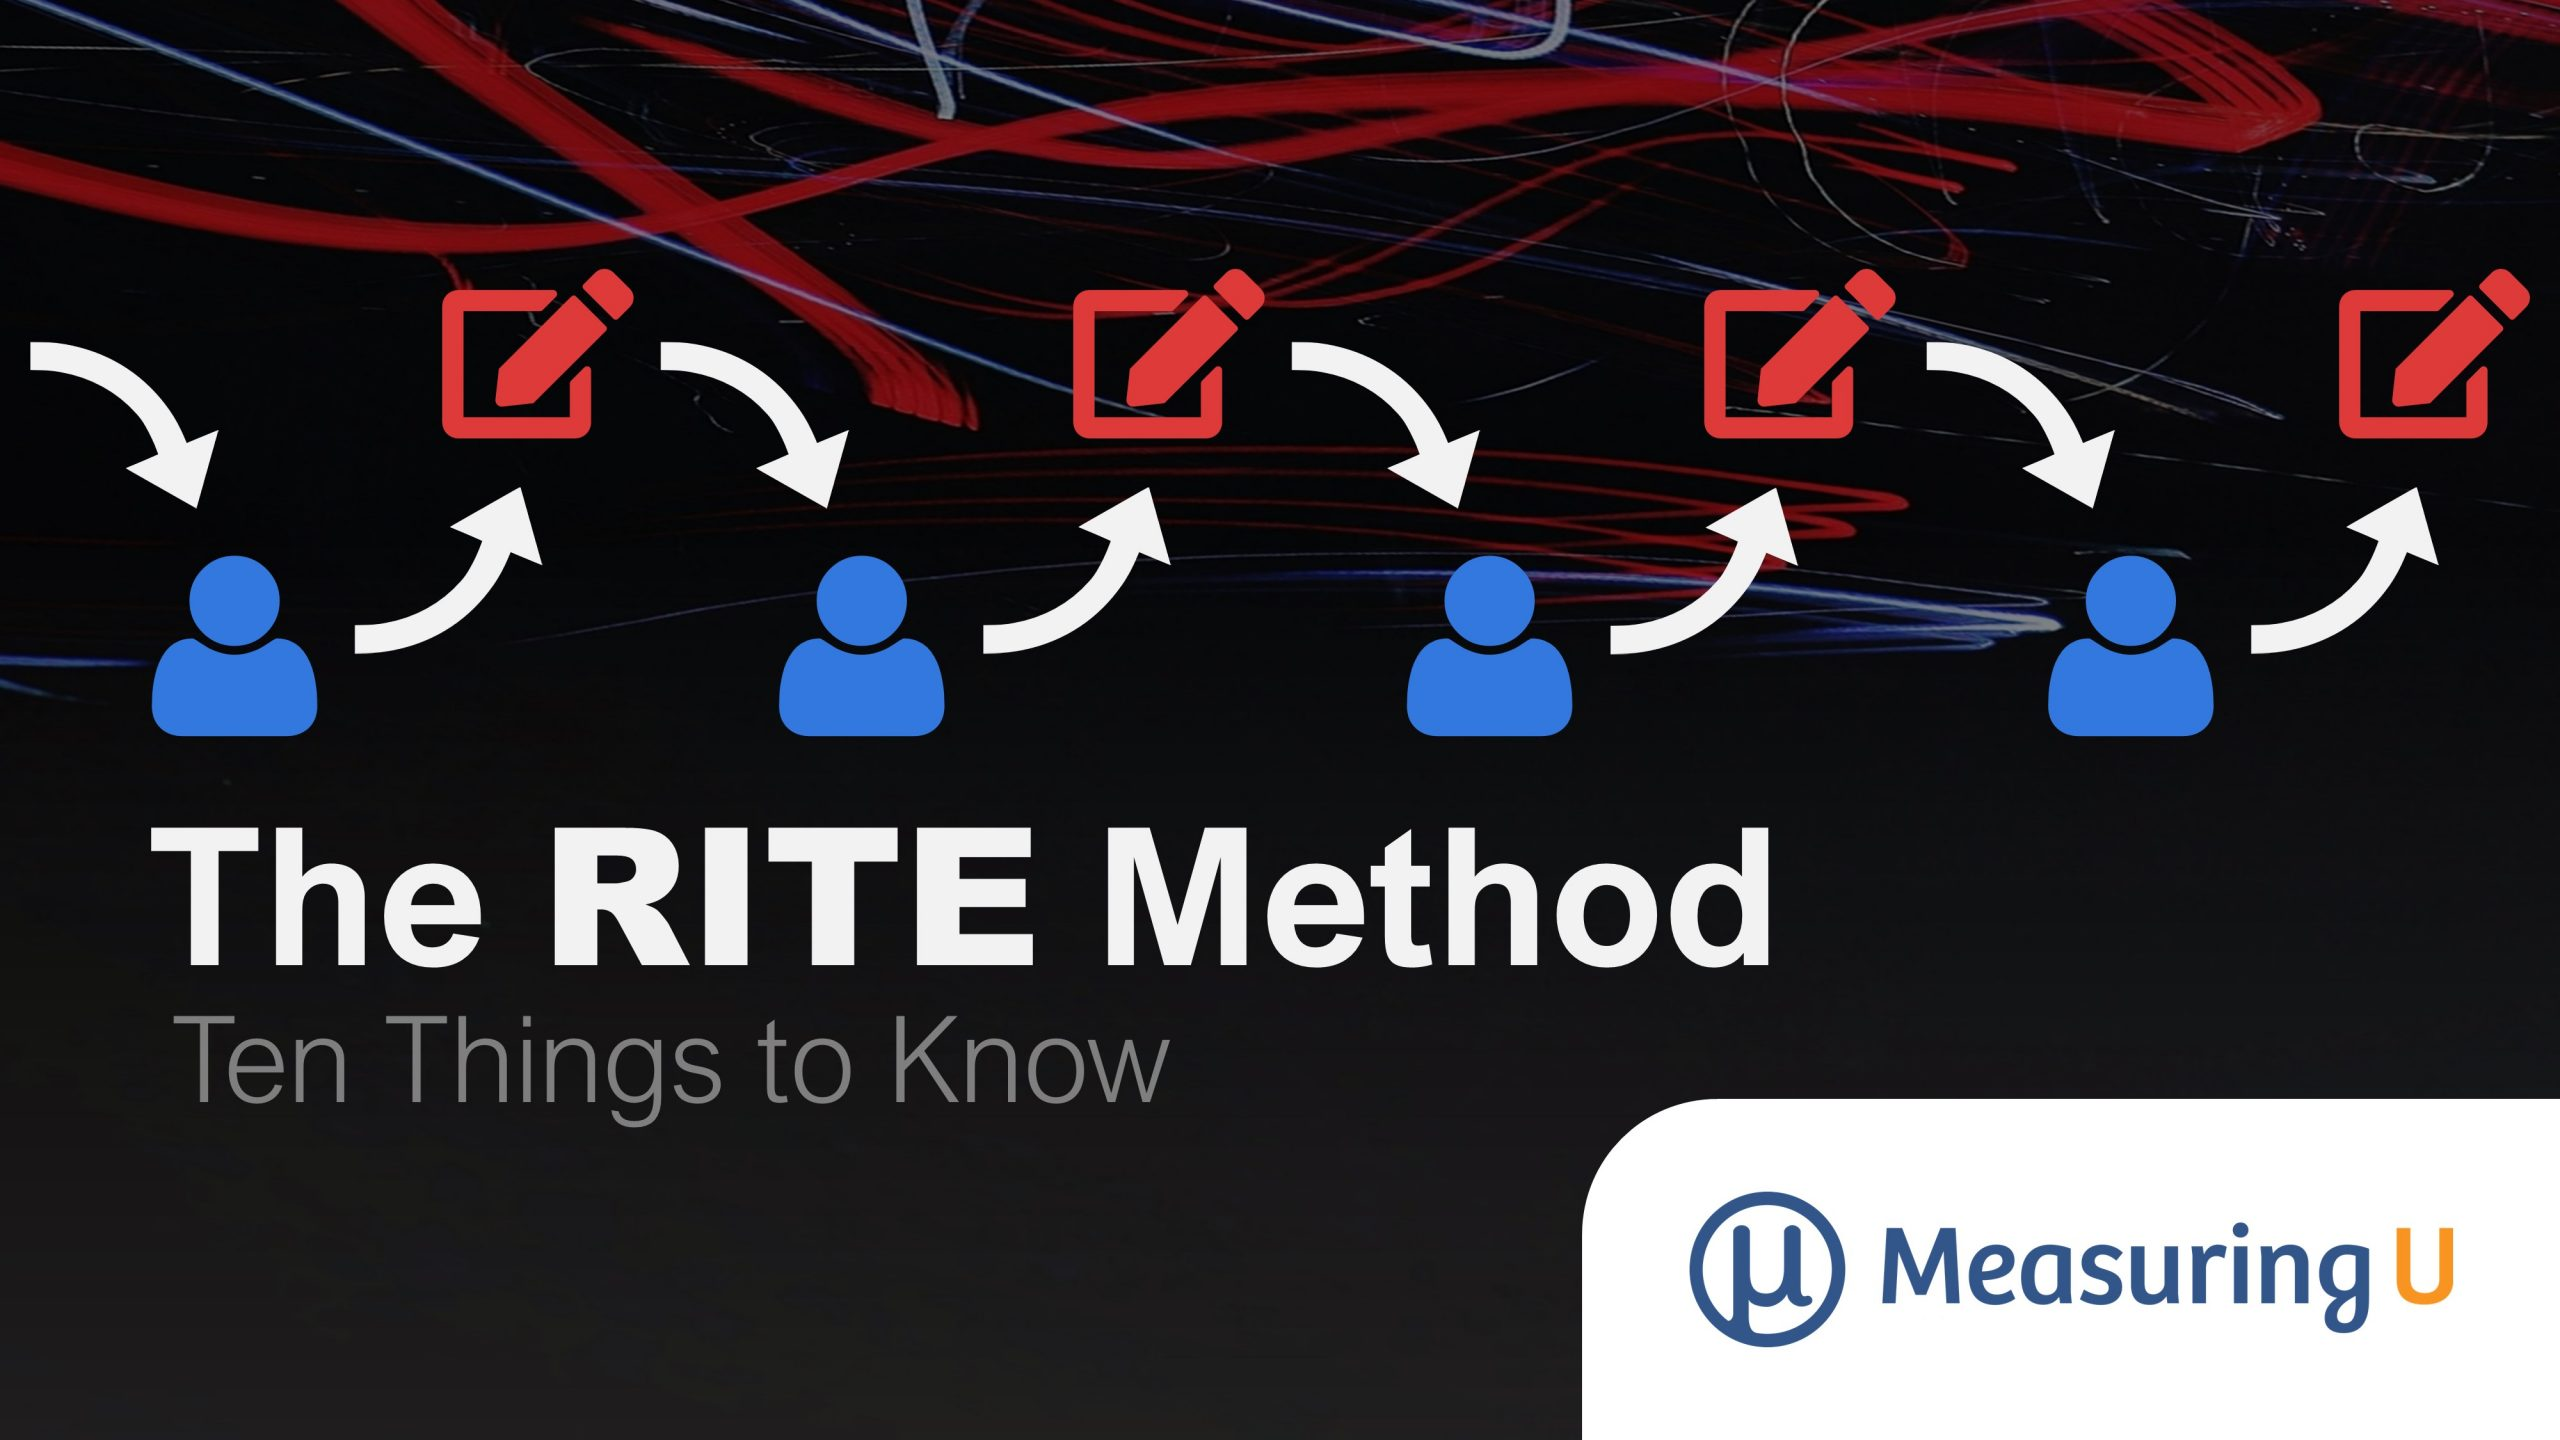 Ten Things to Know about the RITE Method